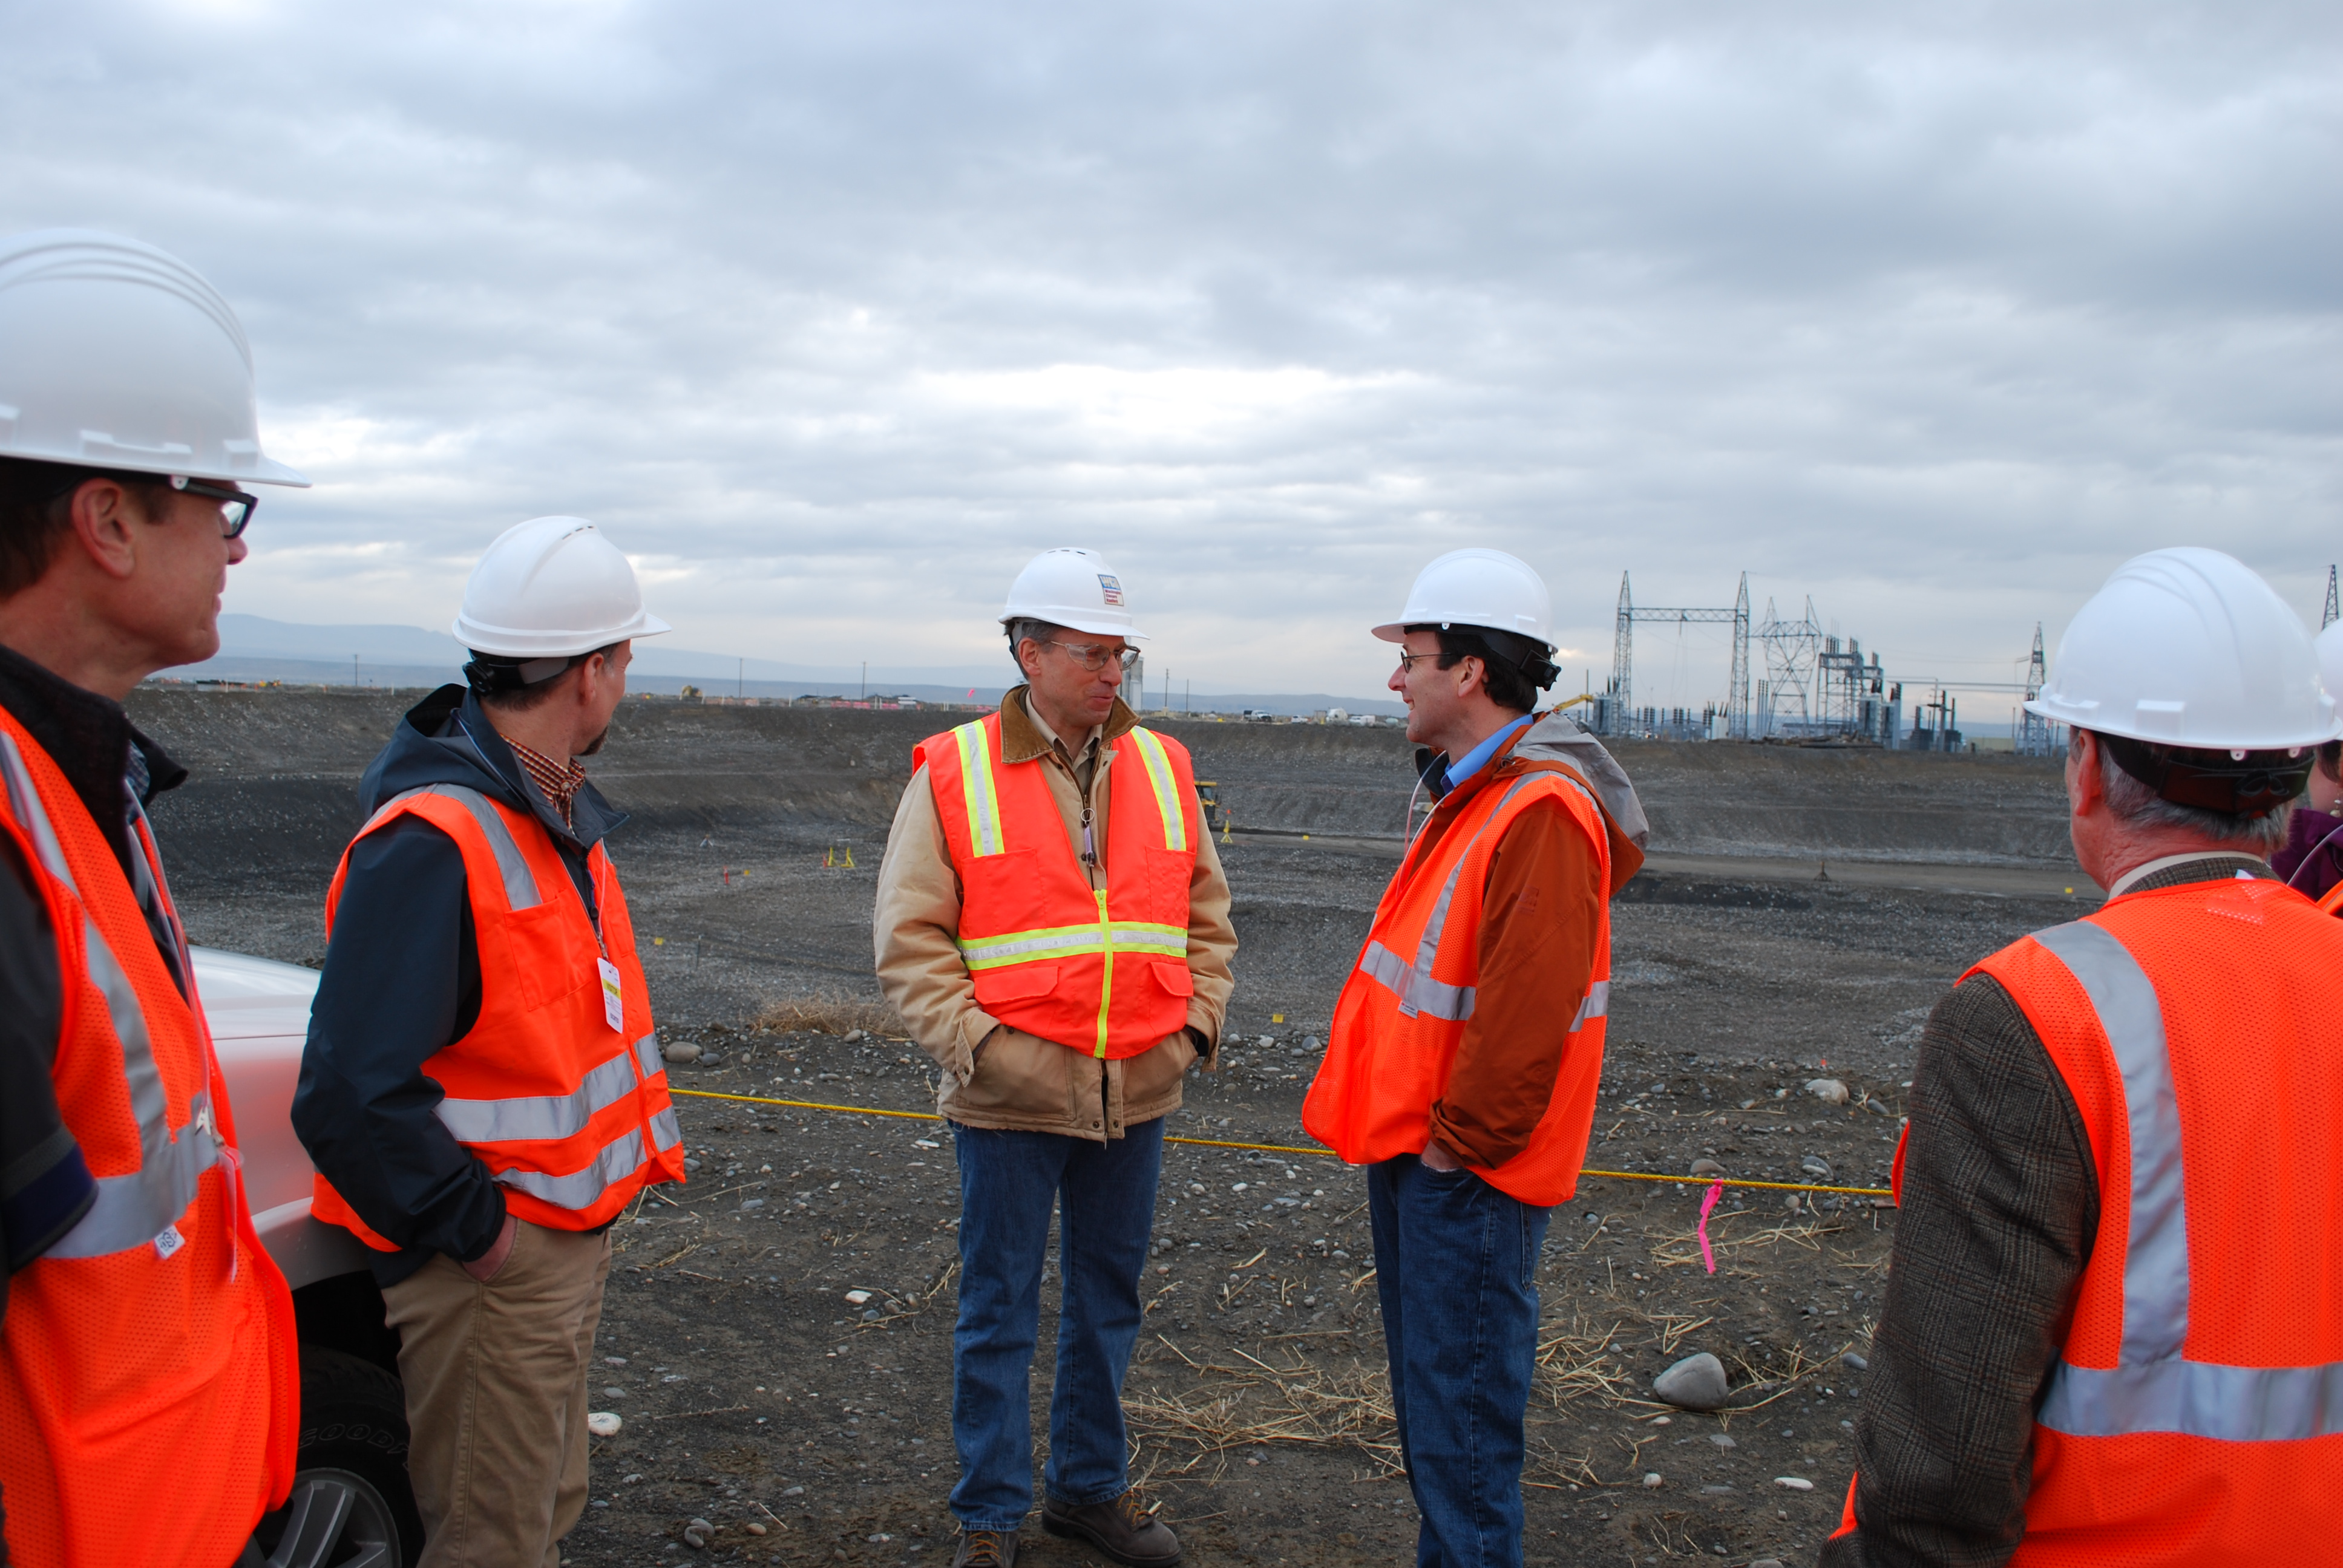 Attorney General Ferguson talking to workers at Hanford Nuclear Reservation